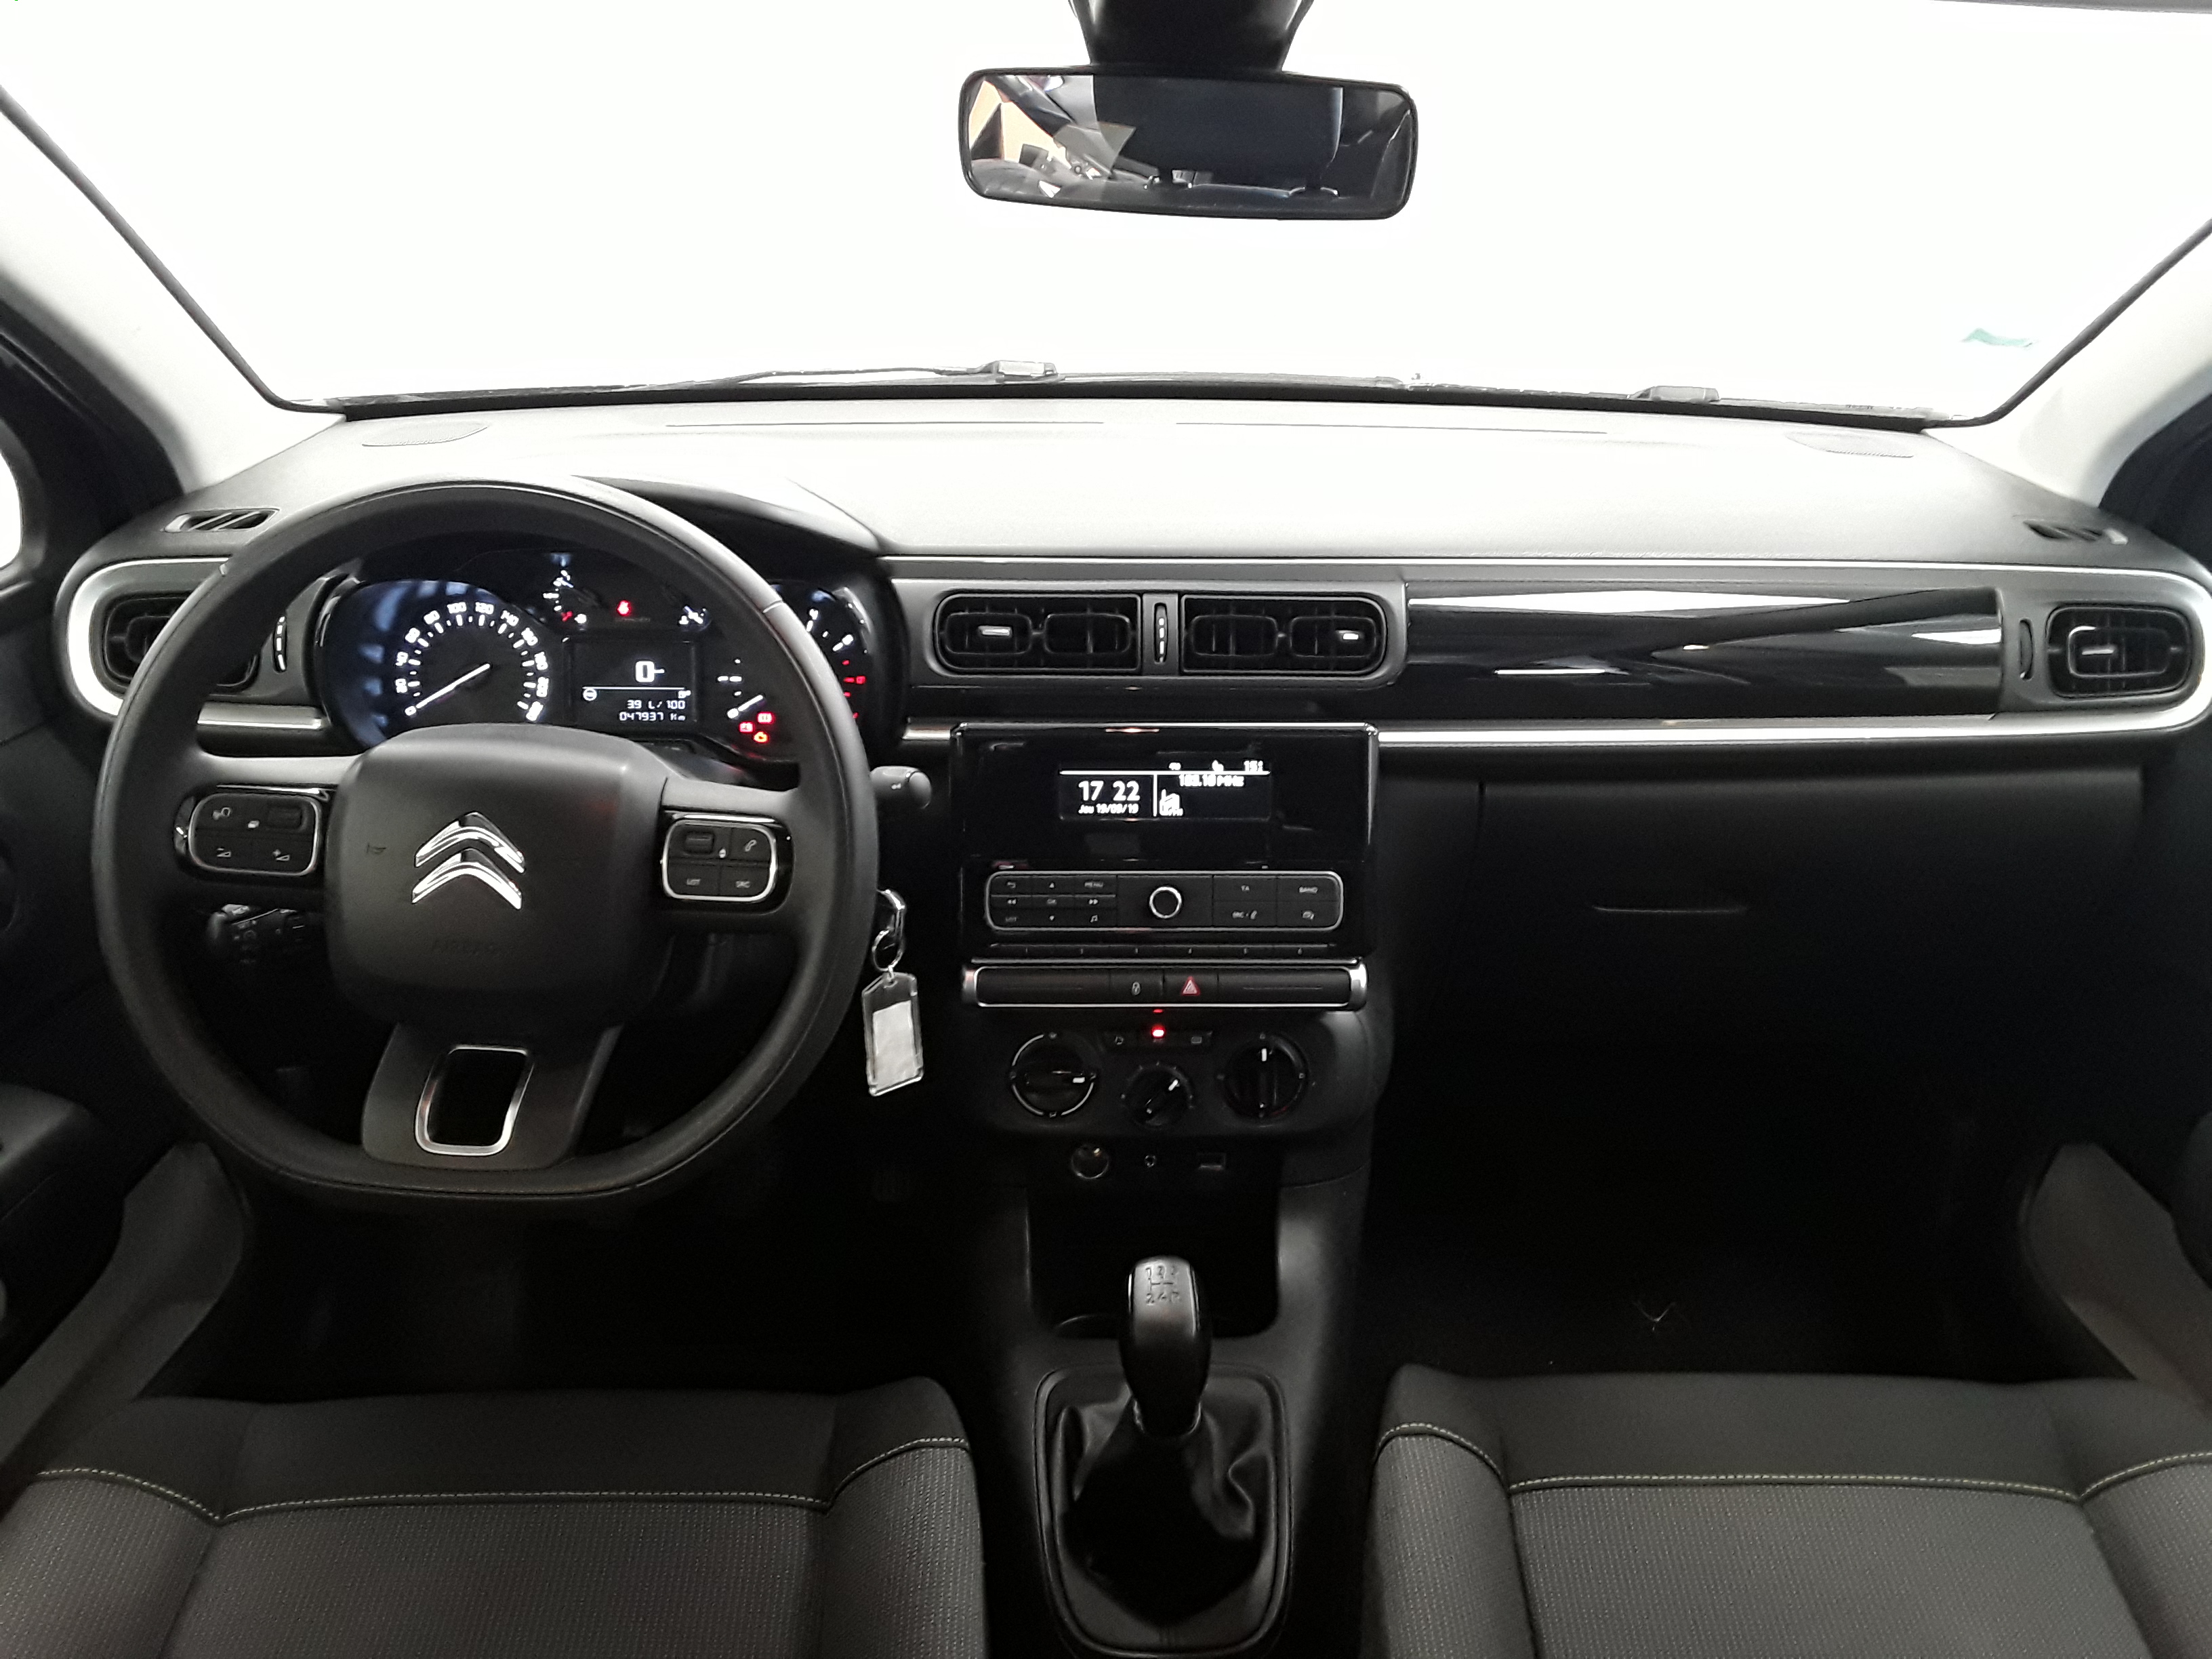 CITROEN C3 BUSINESS 2017 à 9900 € - Photo n°10